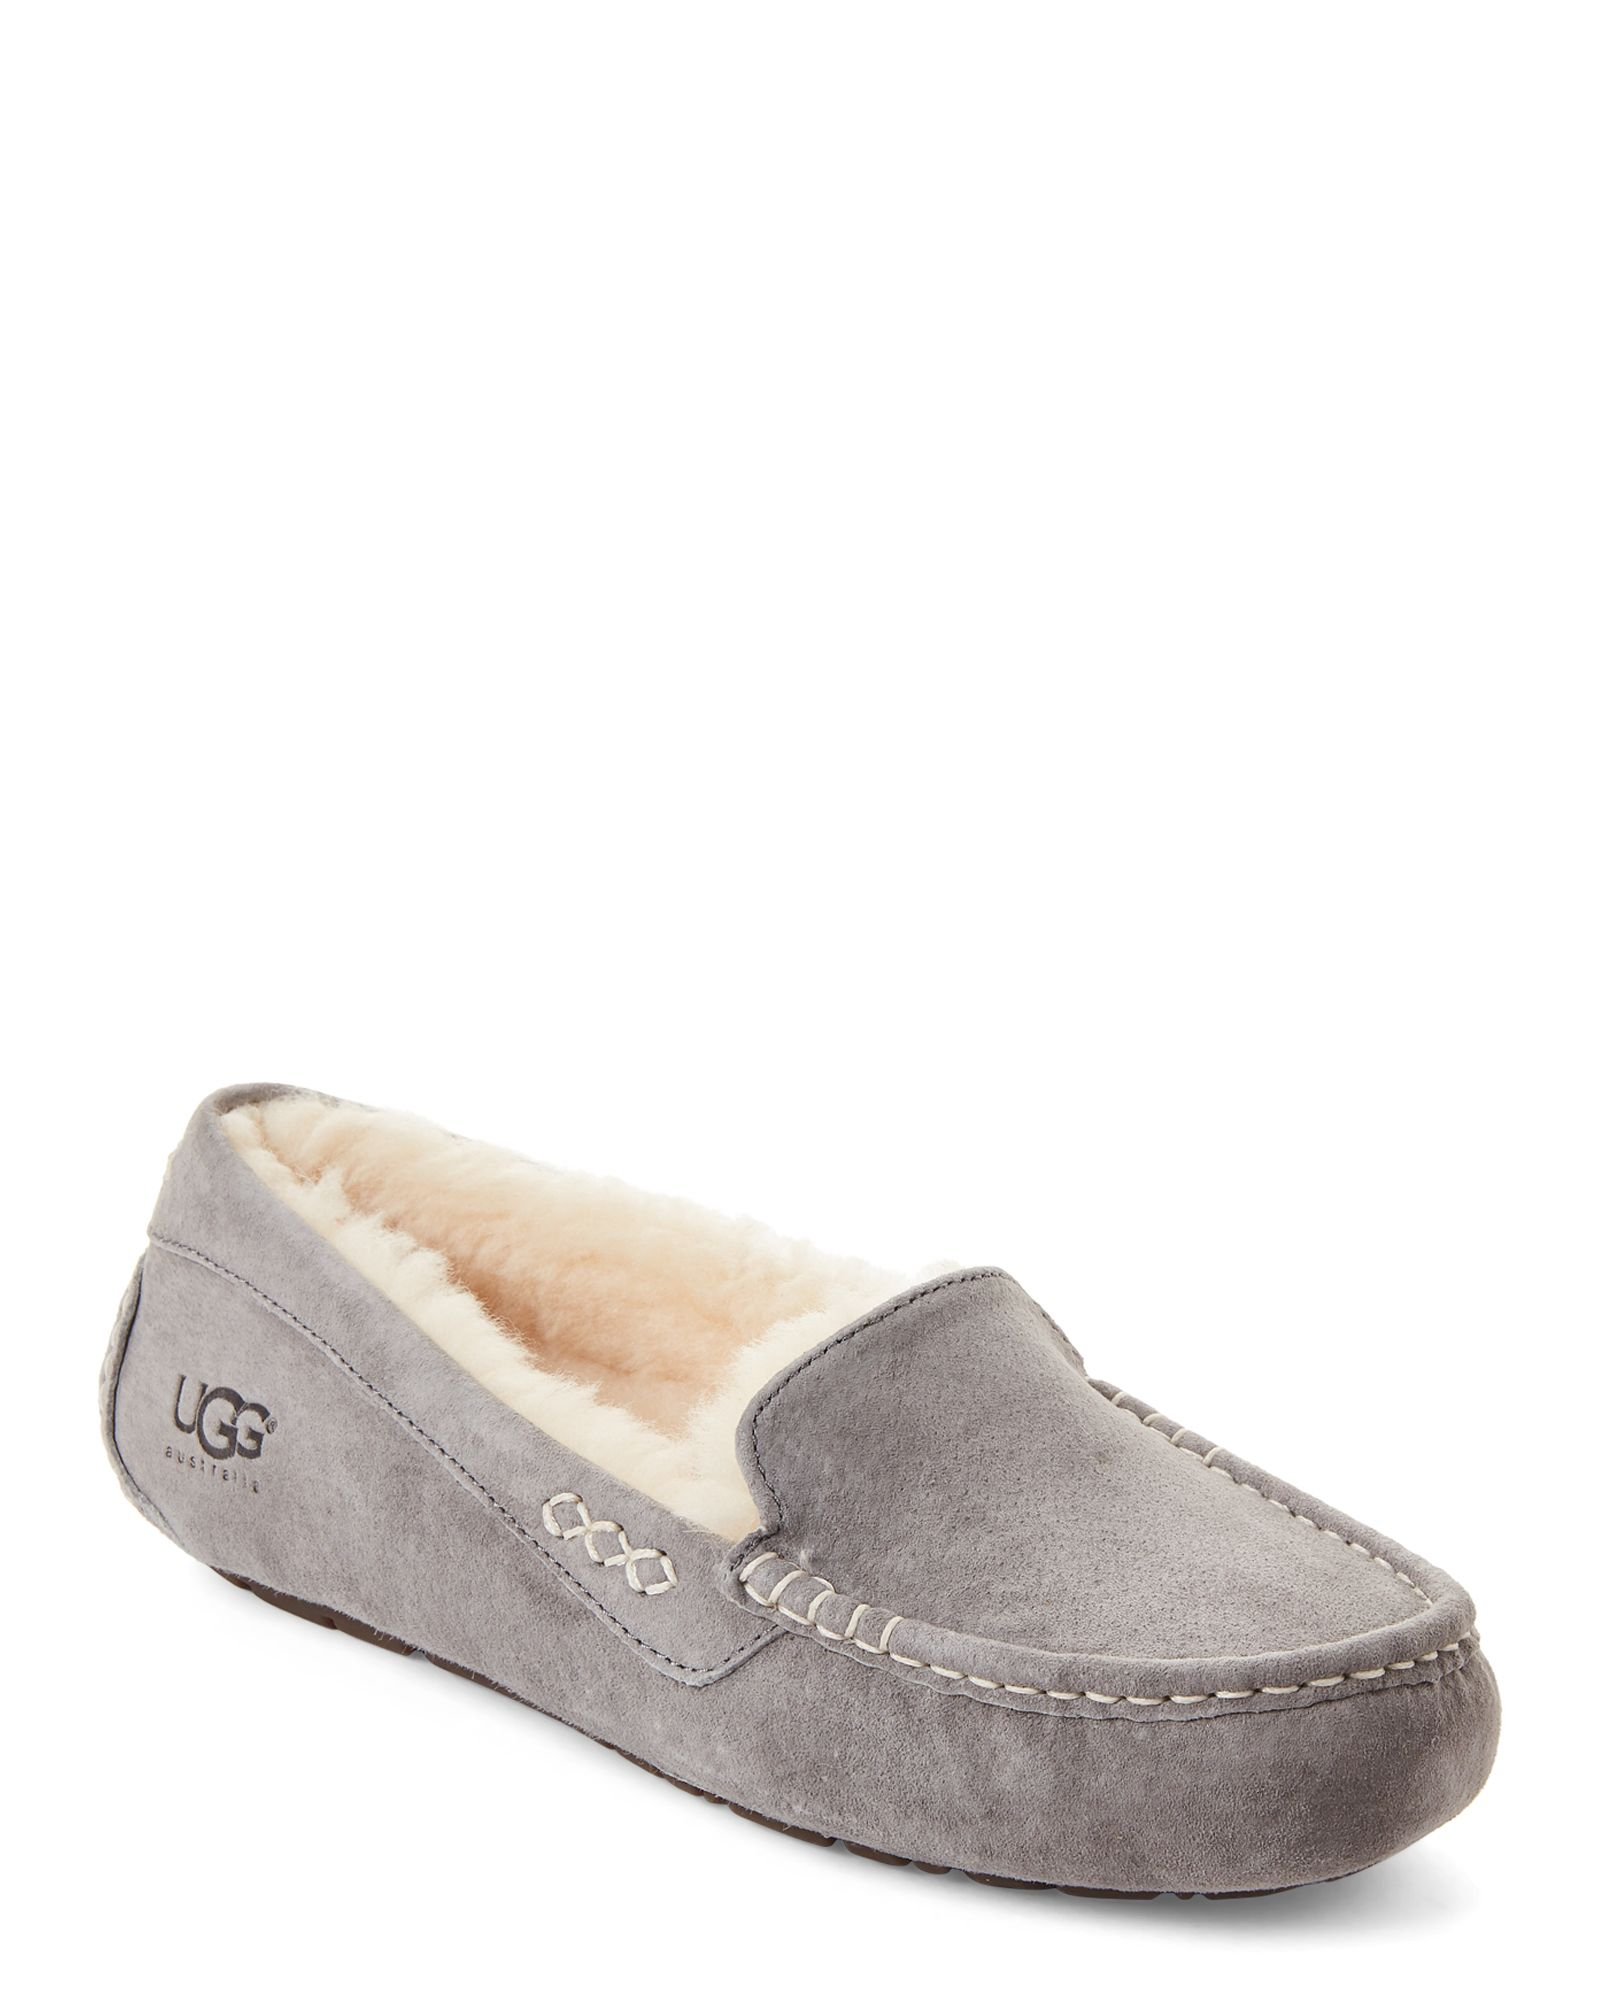 64147be4de8 Light Grey Ansley Mocassin Slippers | *Apparel & Accessories ...